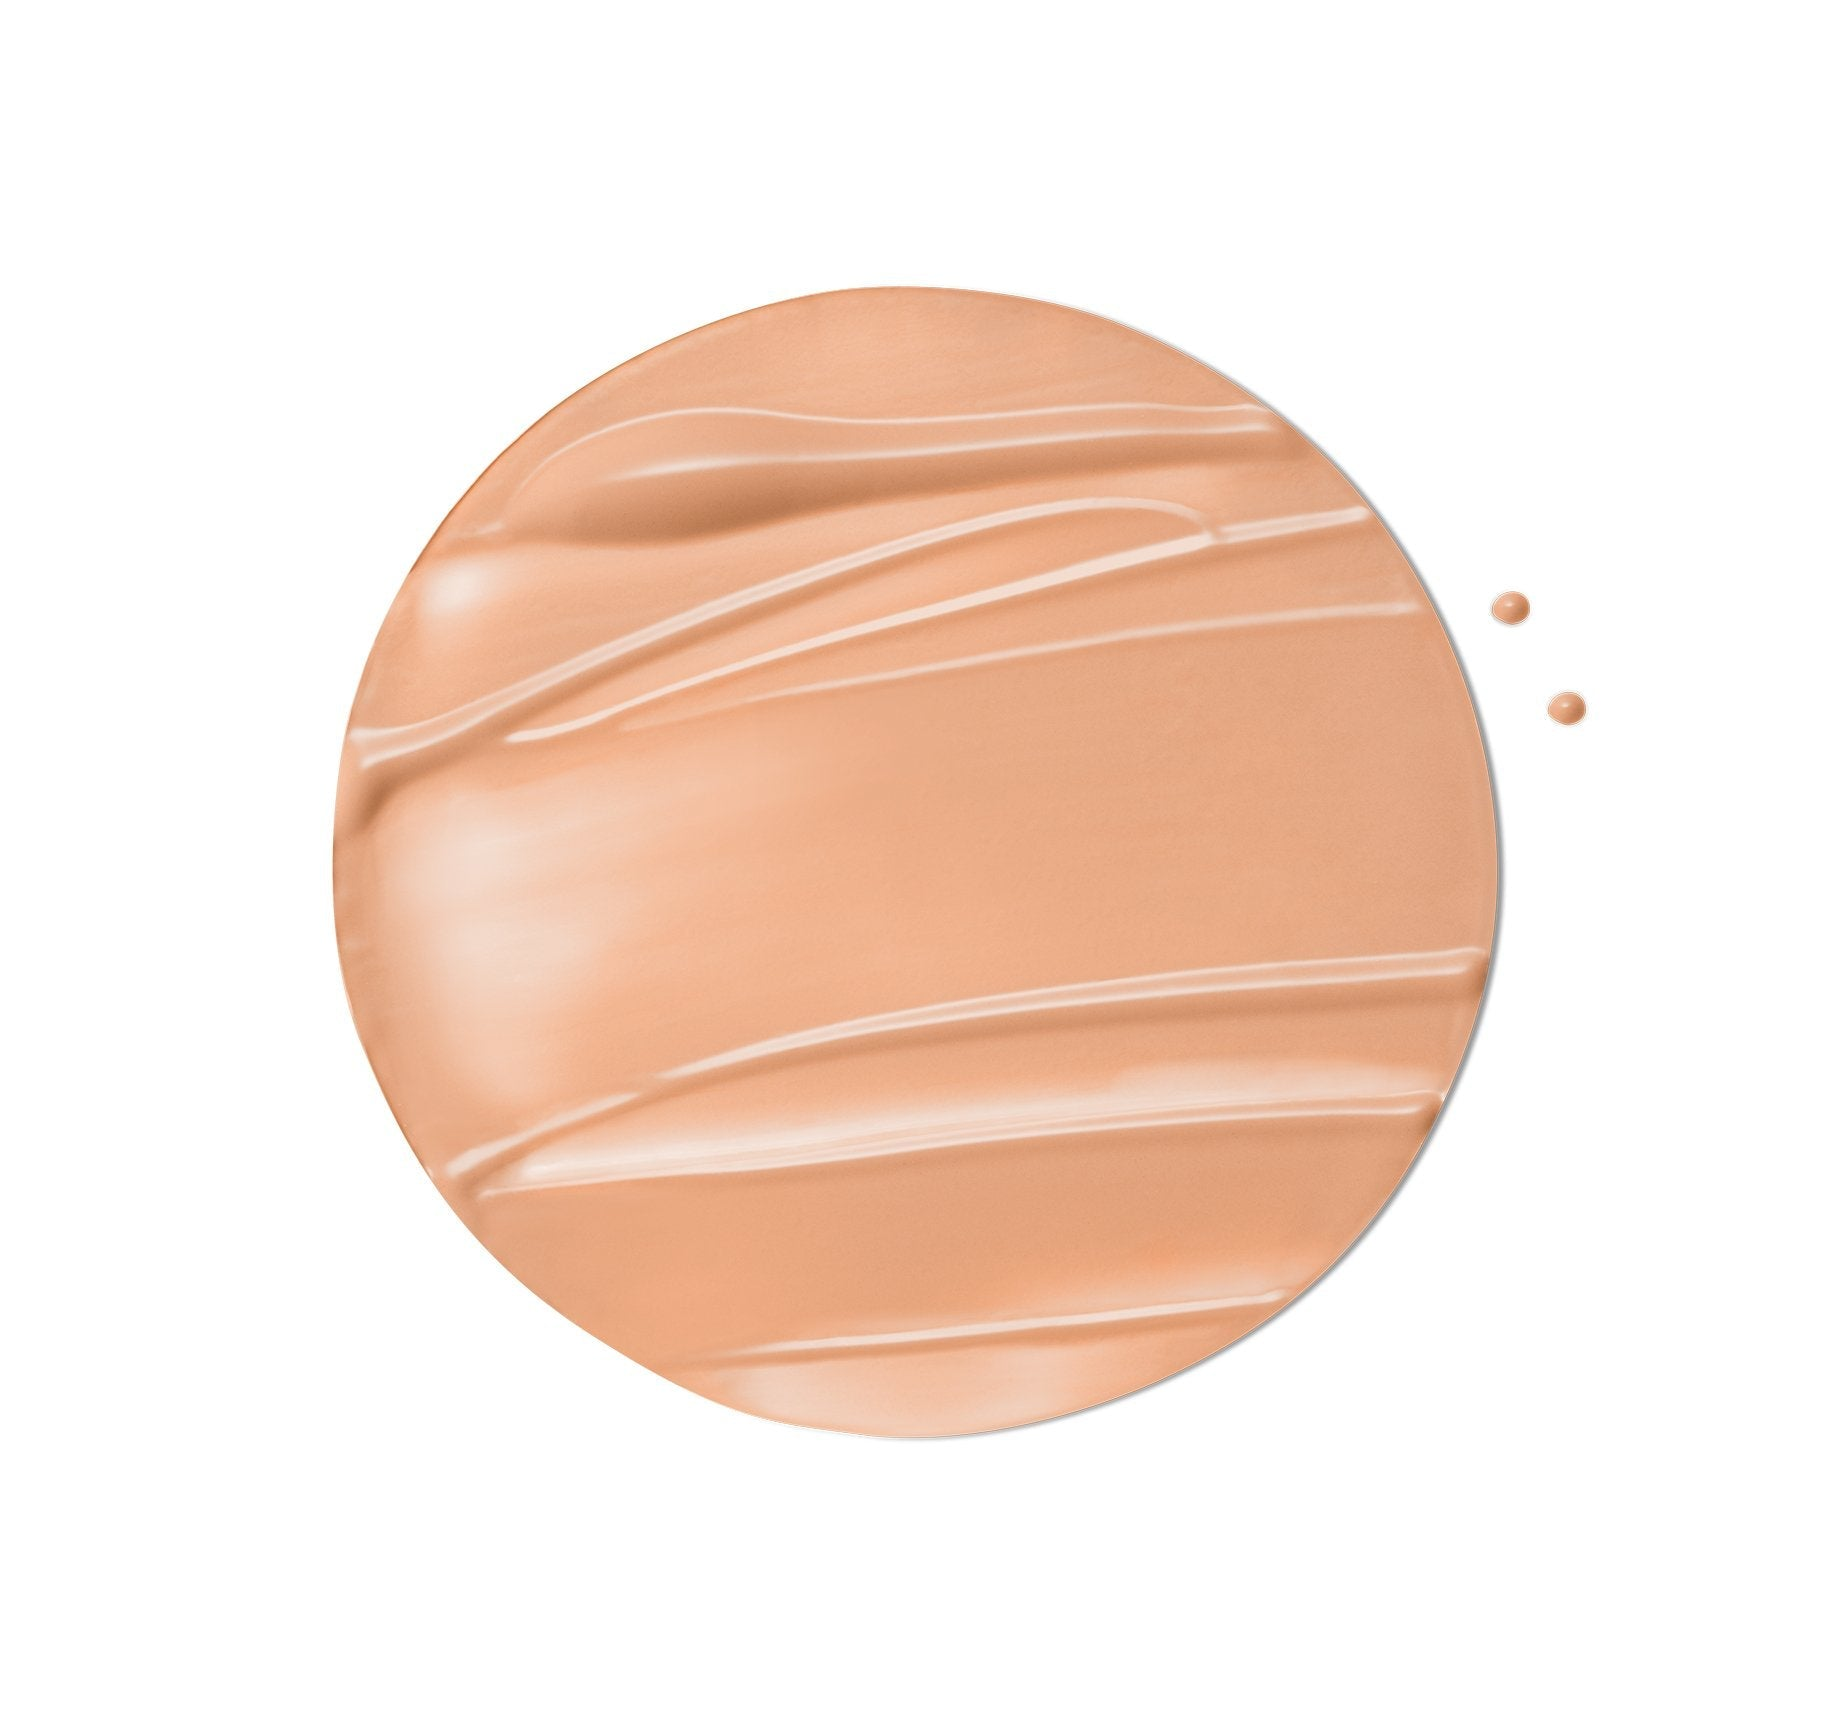 Hint Hint Skin Tint Hint Of Toffee Milled has emails from morphe, including new arrivals, sales, discounts, and coupon codes. hint hint skin tint hint of toffee